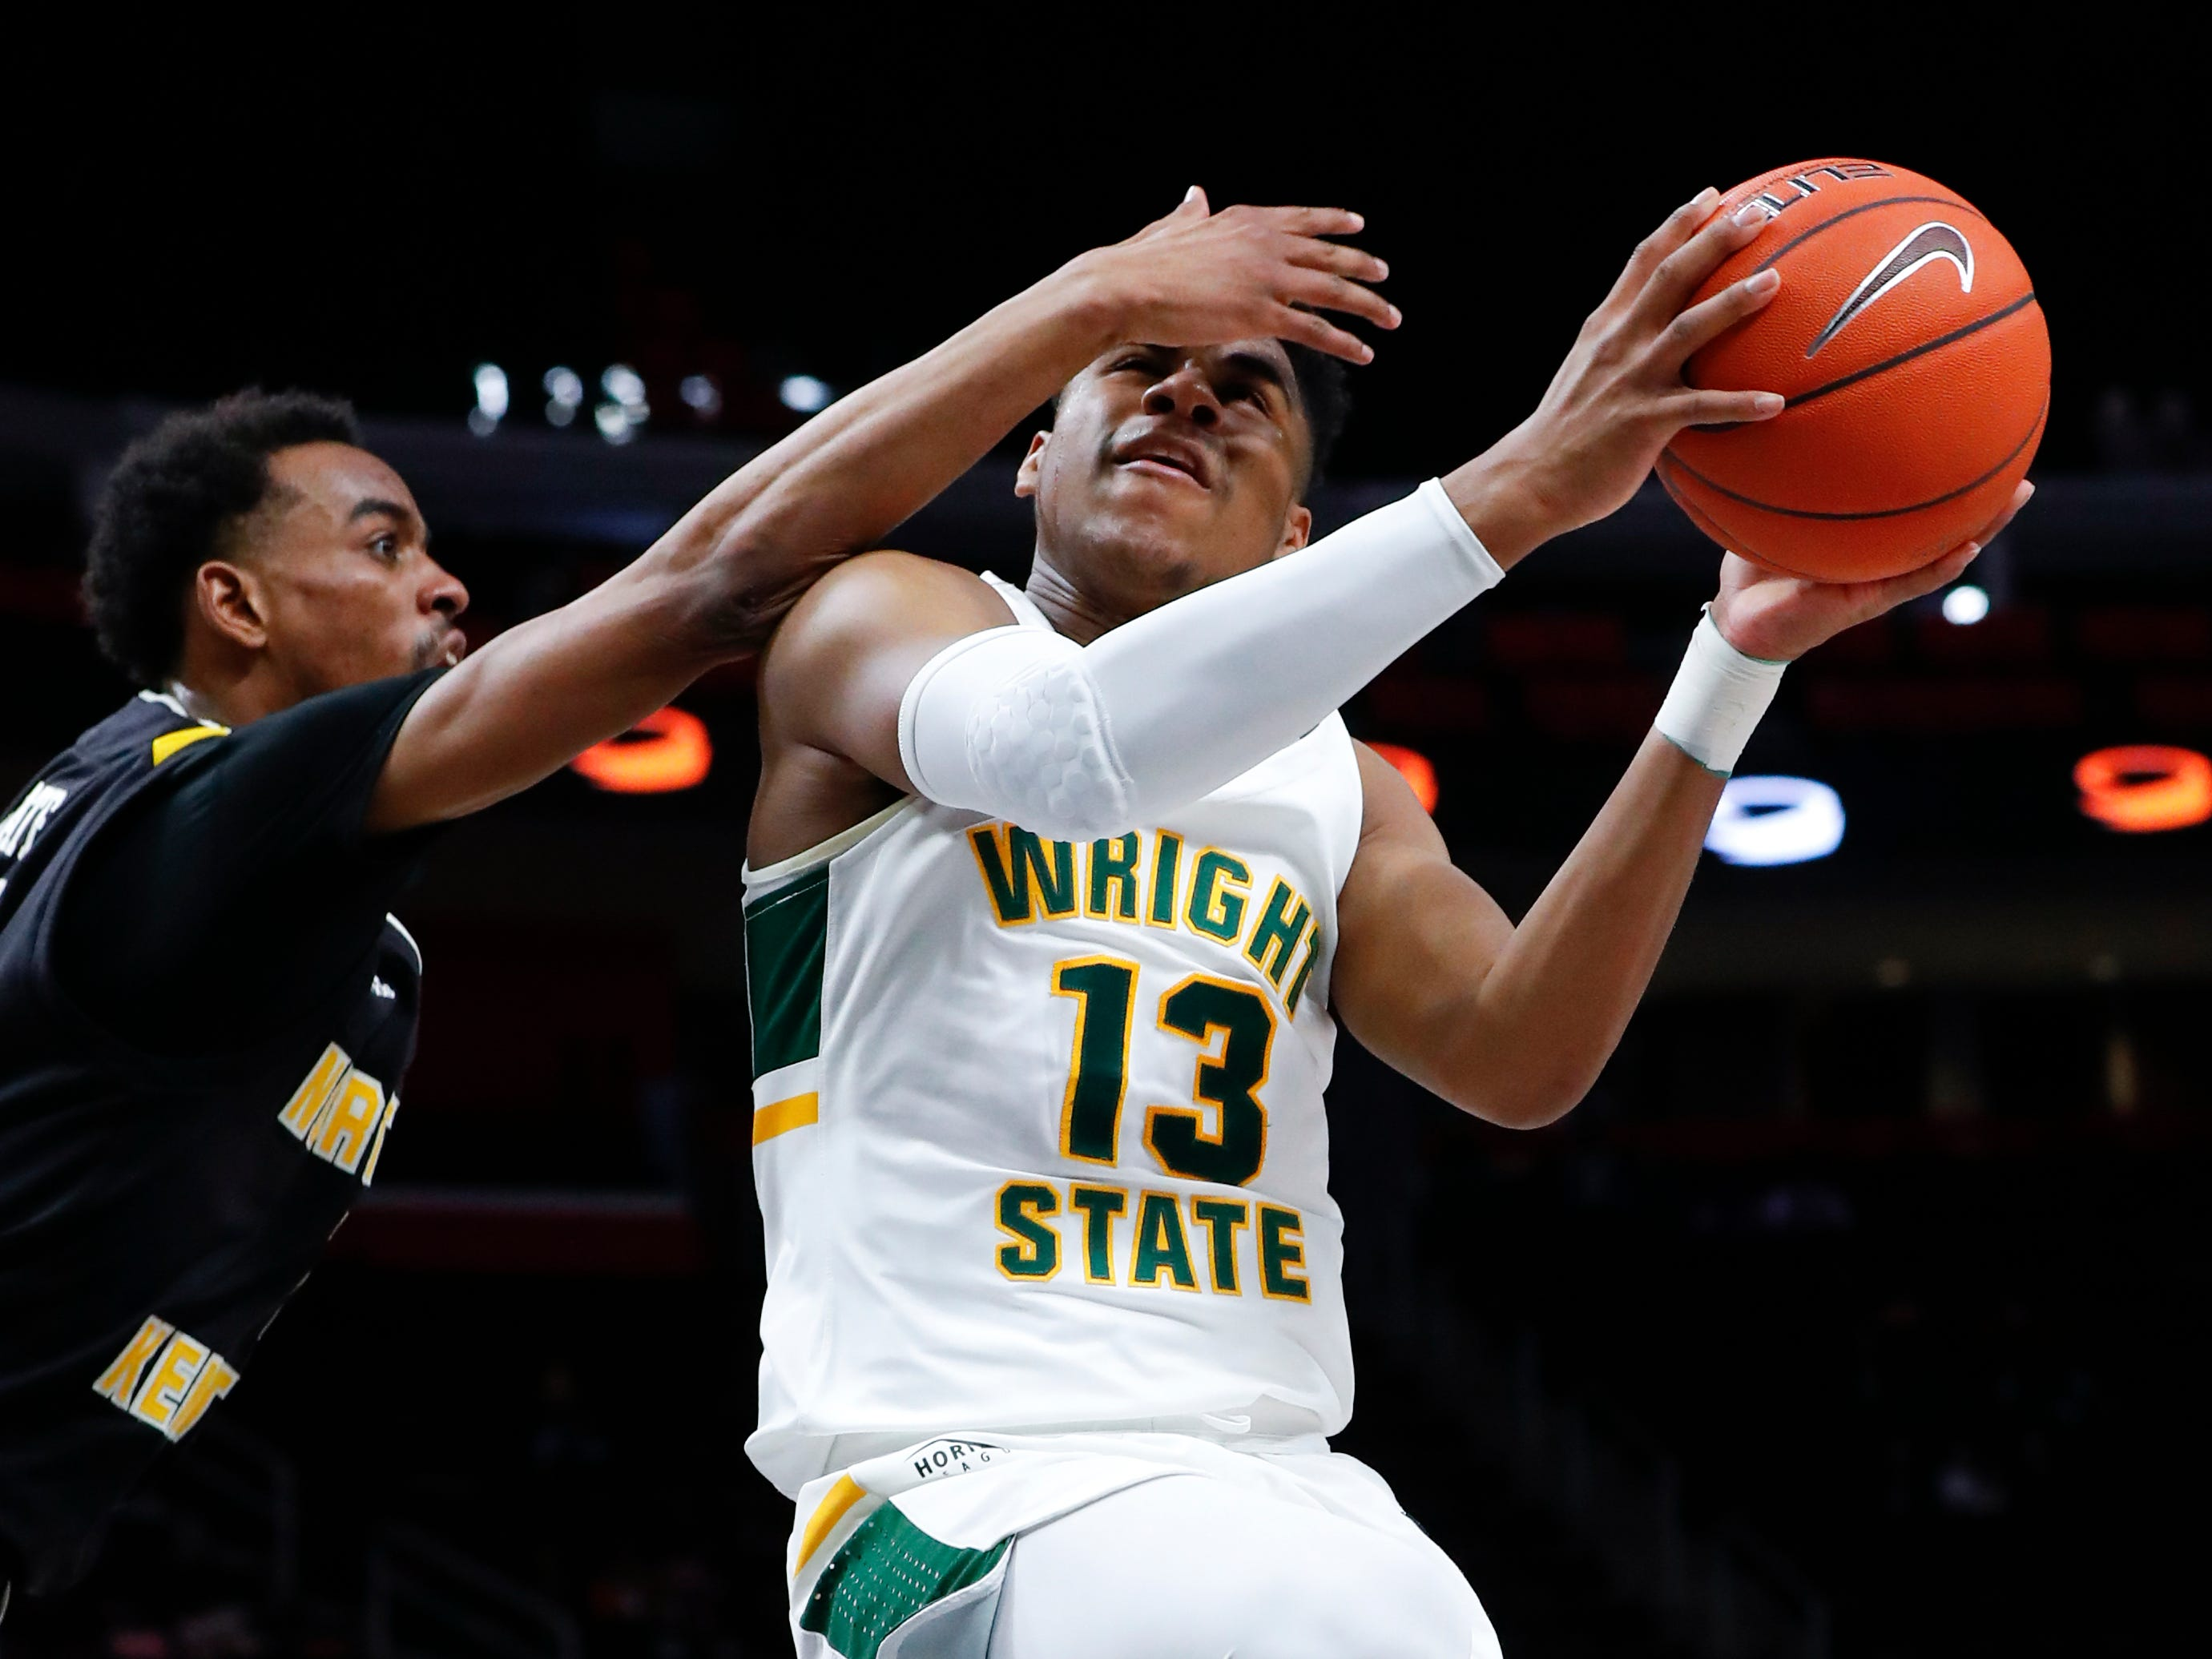 Wright State guard Malachi Smith (13) drives on Northern Kentucky guard Jalen Tate (11) during the first half.